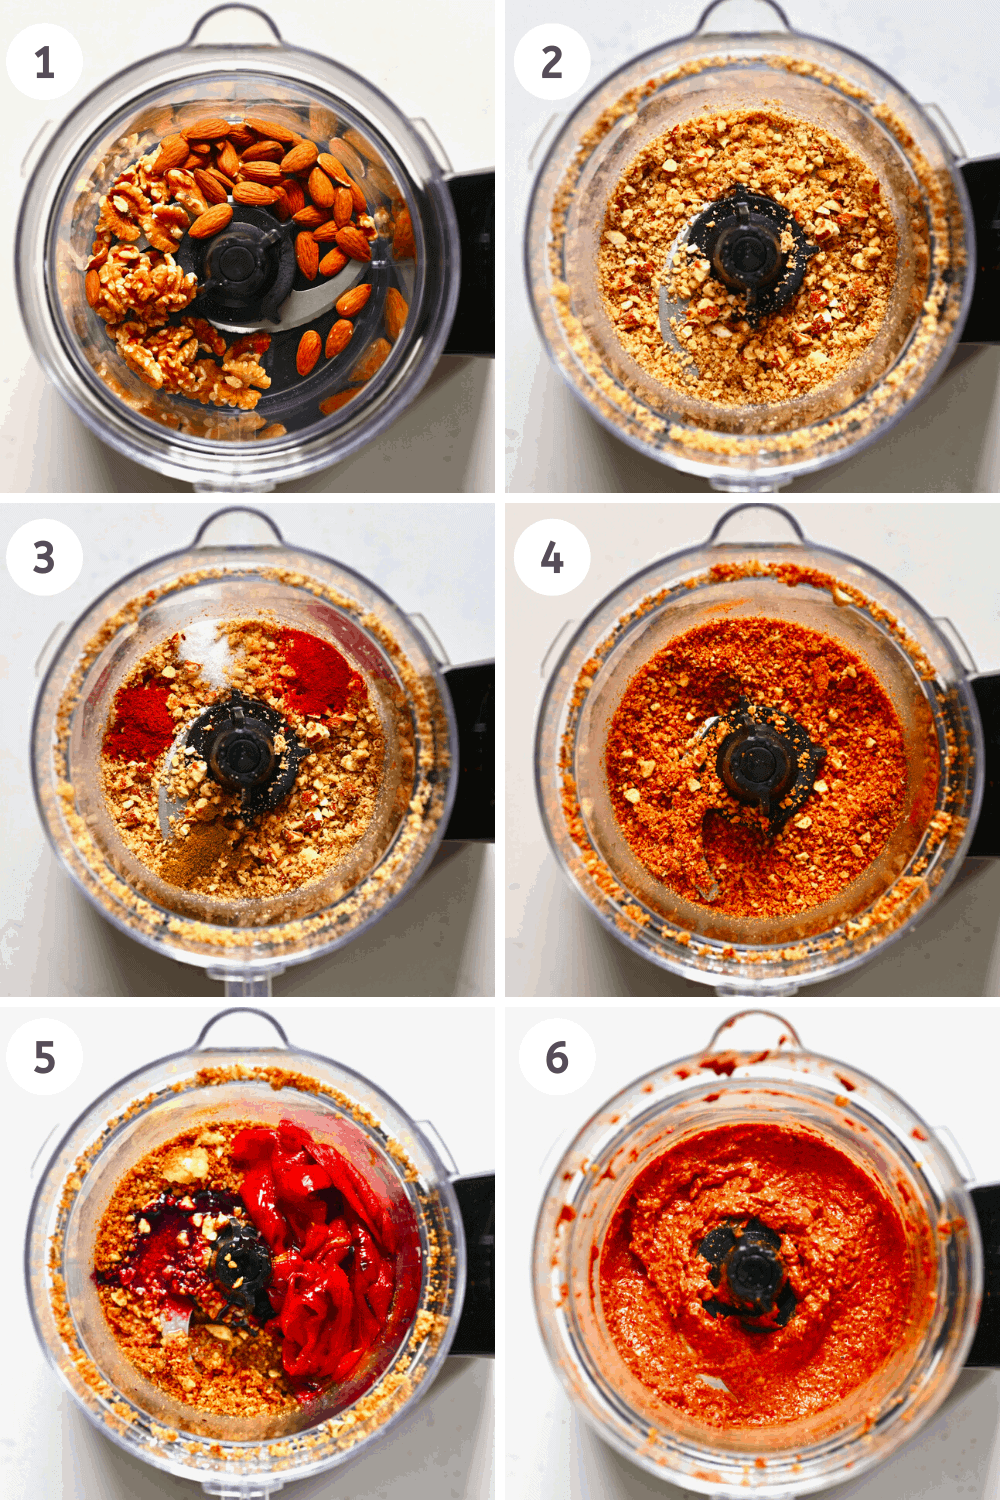 Muhammara Blending Steps 1